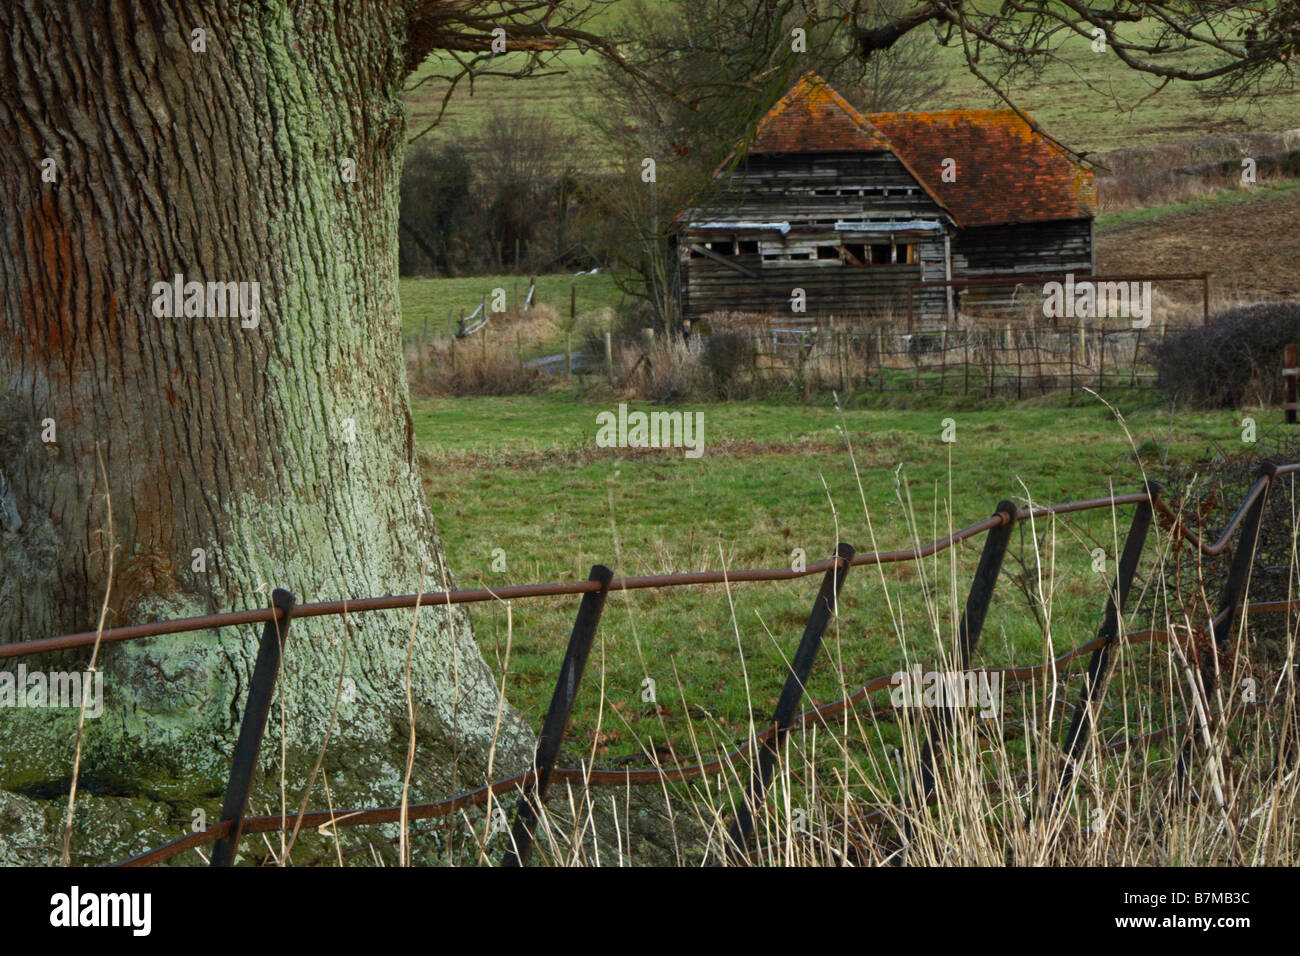 A derelict barn near Hambleden, Buckinghamshire, United Kingdom - Stock Image